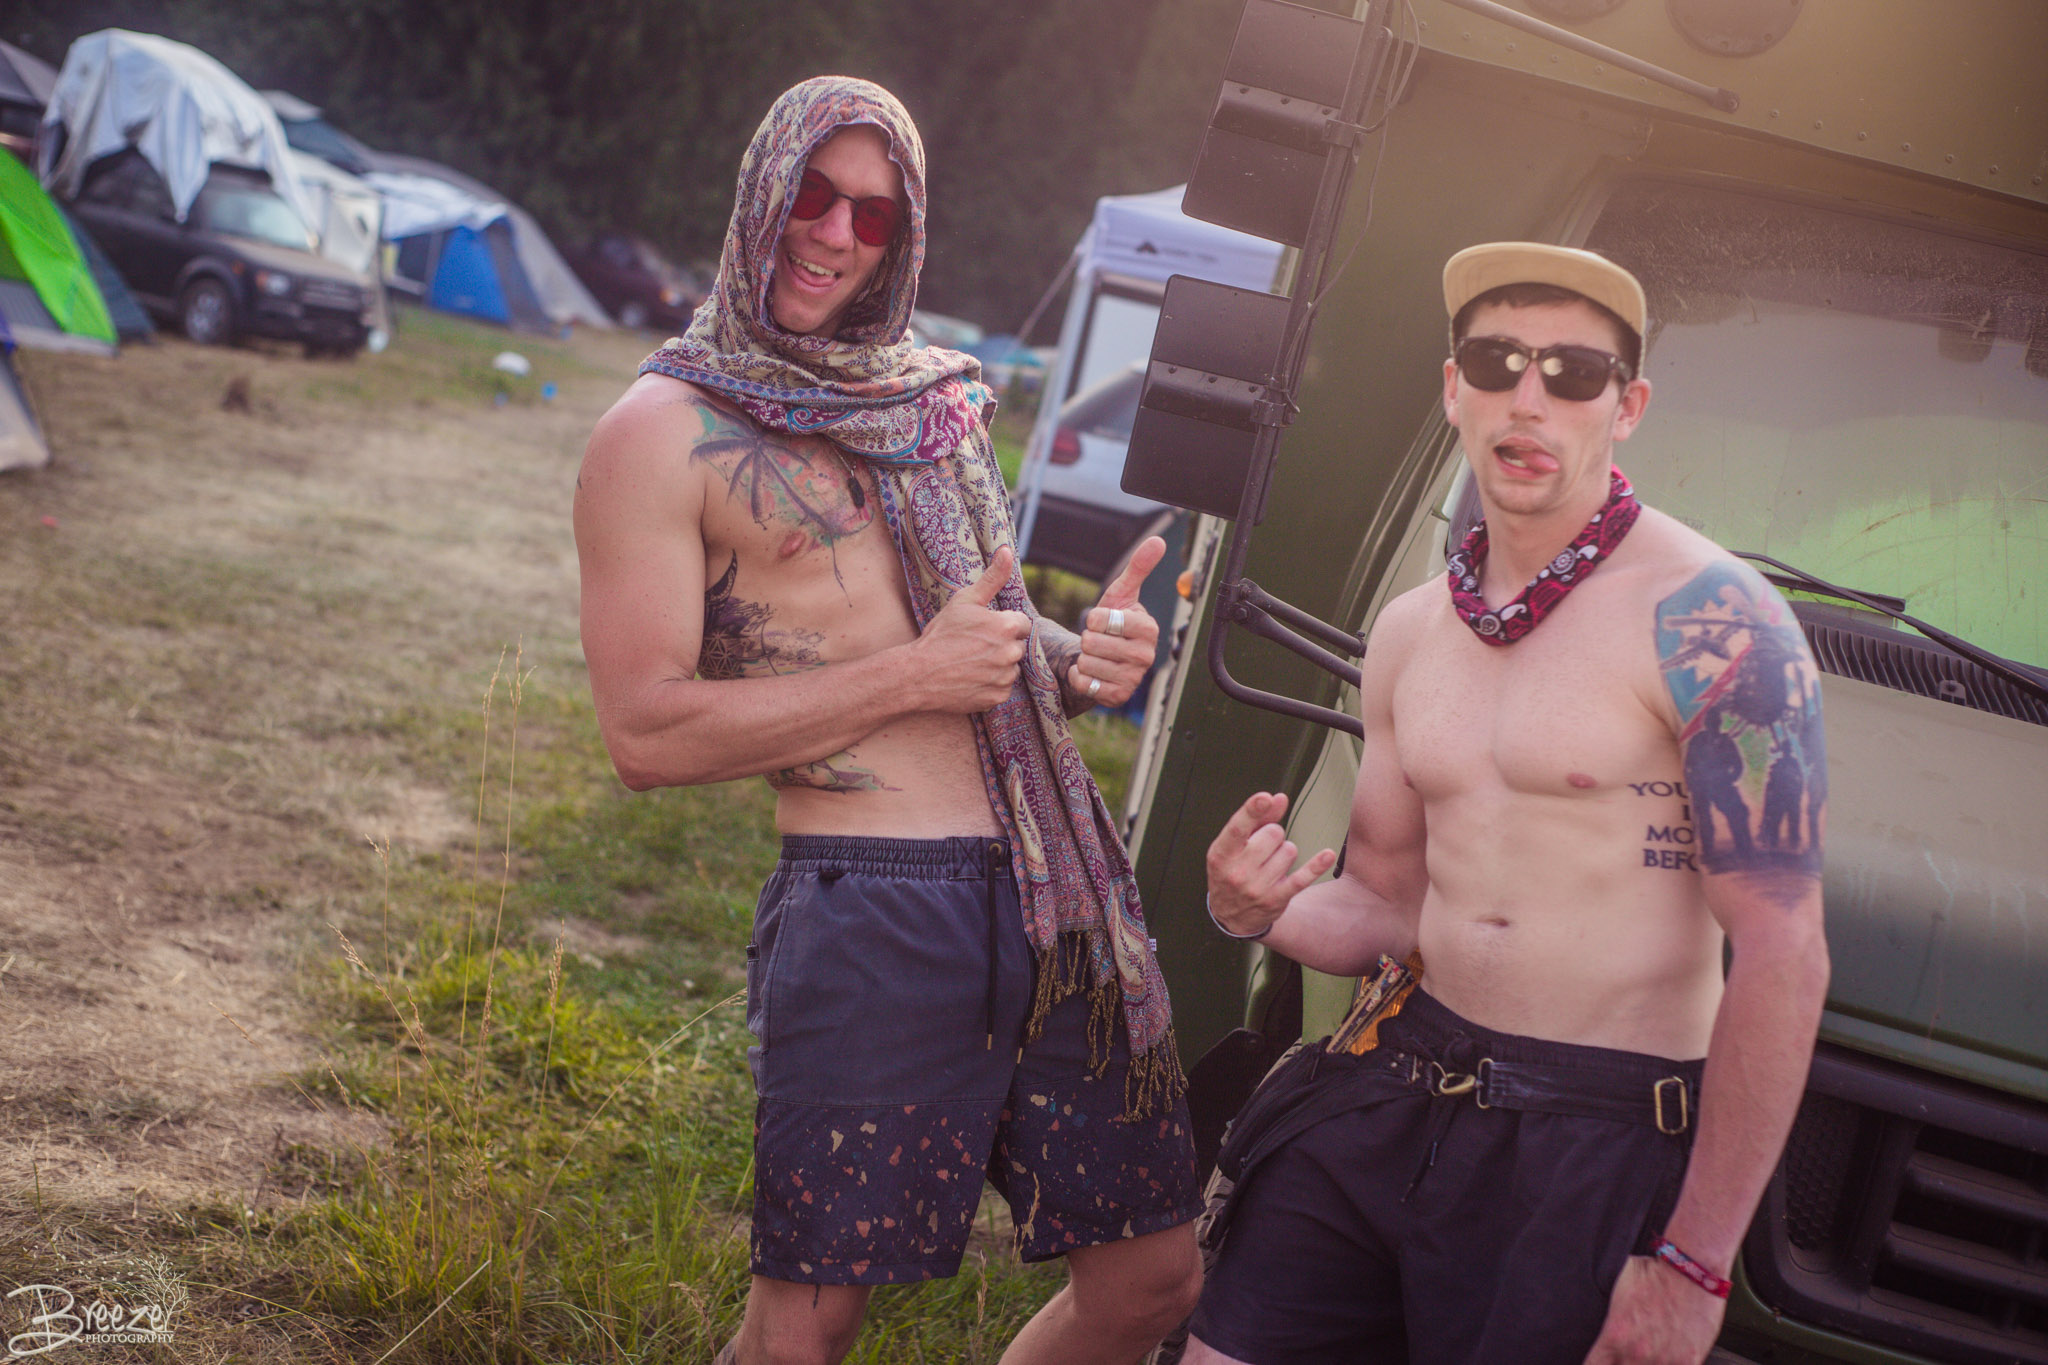 Brie'Ana Breeze Photography & Media - Shambhala 2018-0615.jpg